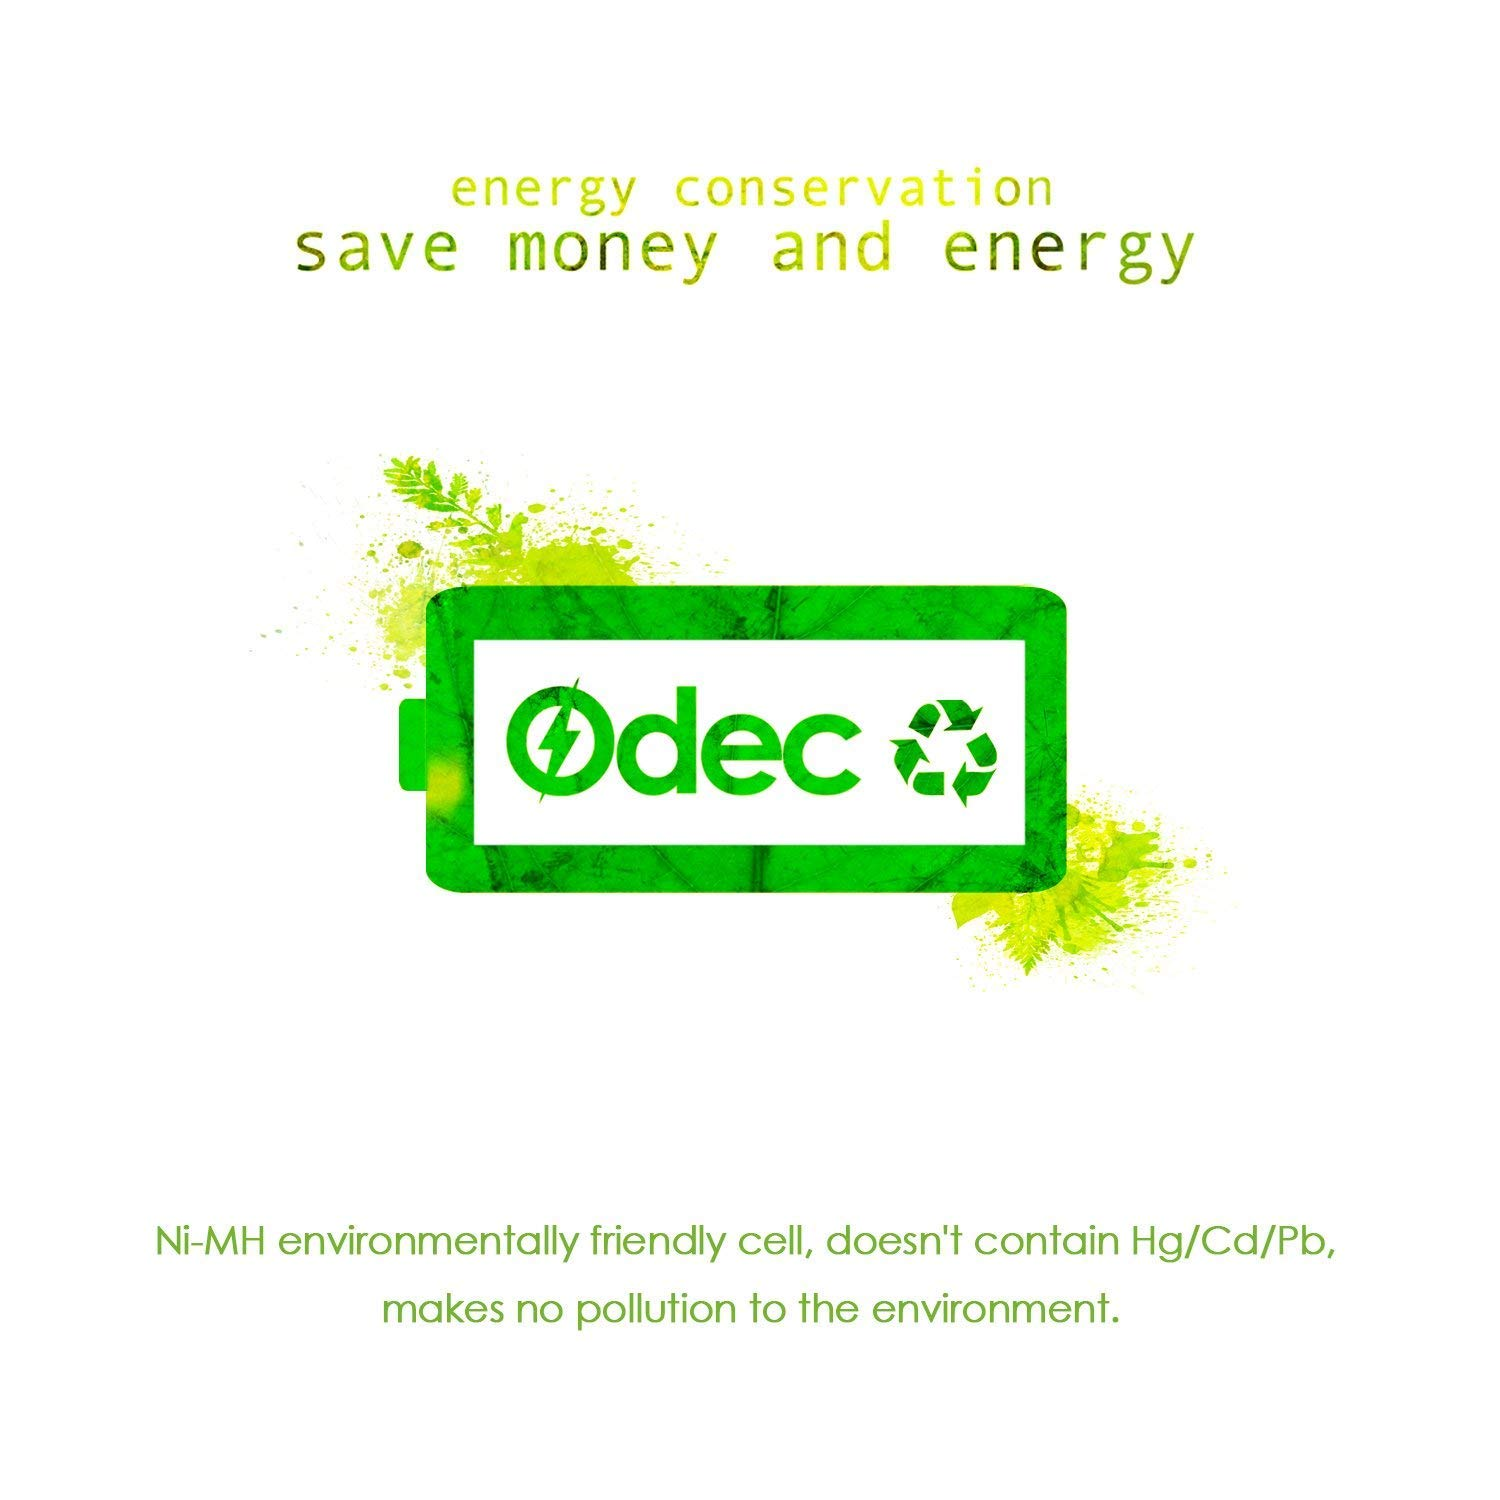 Odec C Rechargeable Batteries, Deep Cycle 5000mAh NiMH Battery Pack LR14/Baby C (4 Pack) by Odec